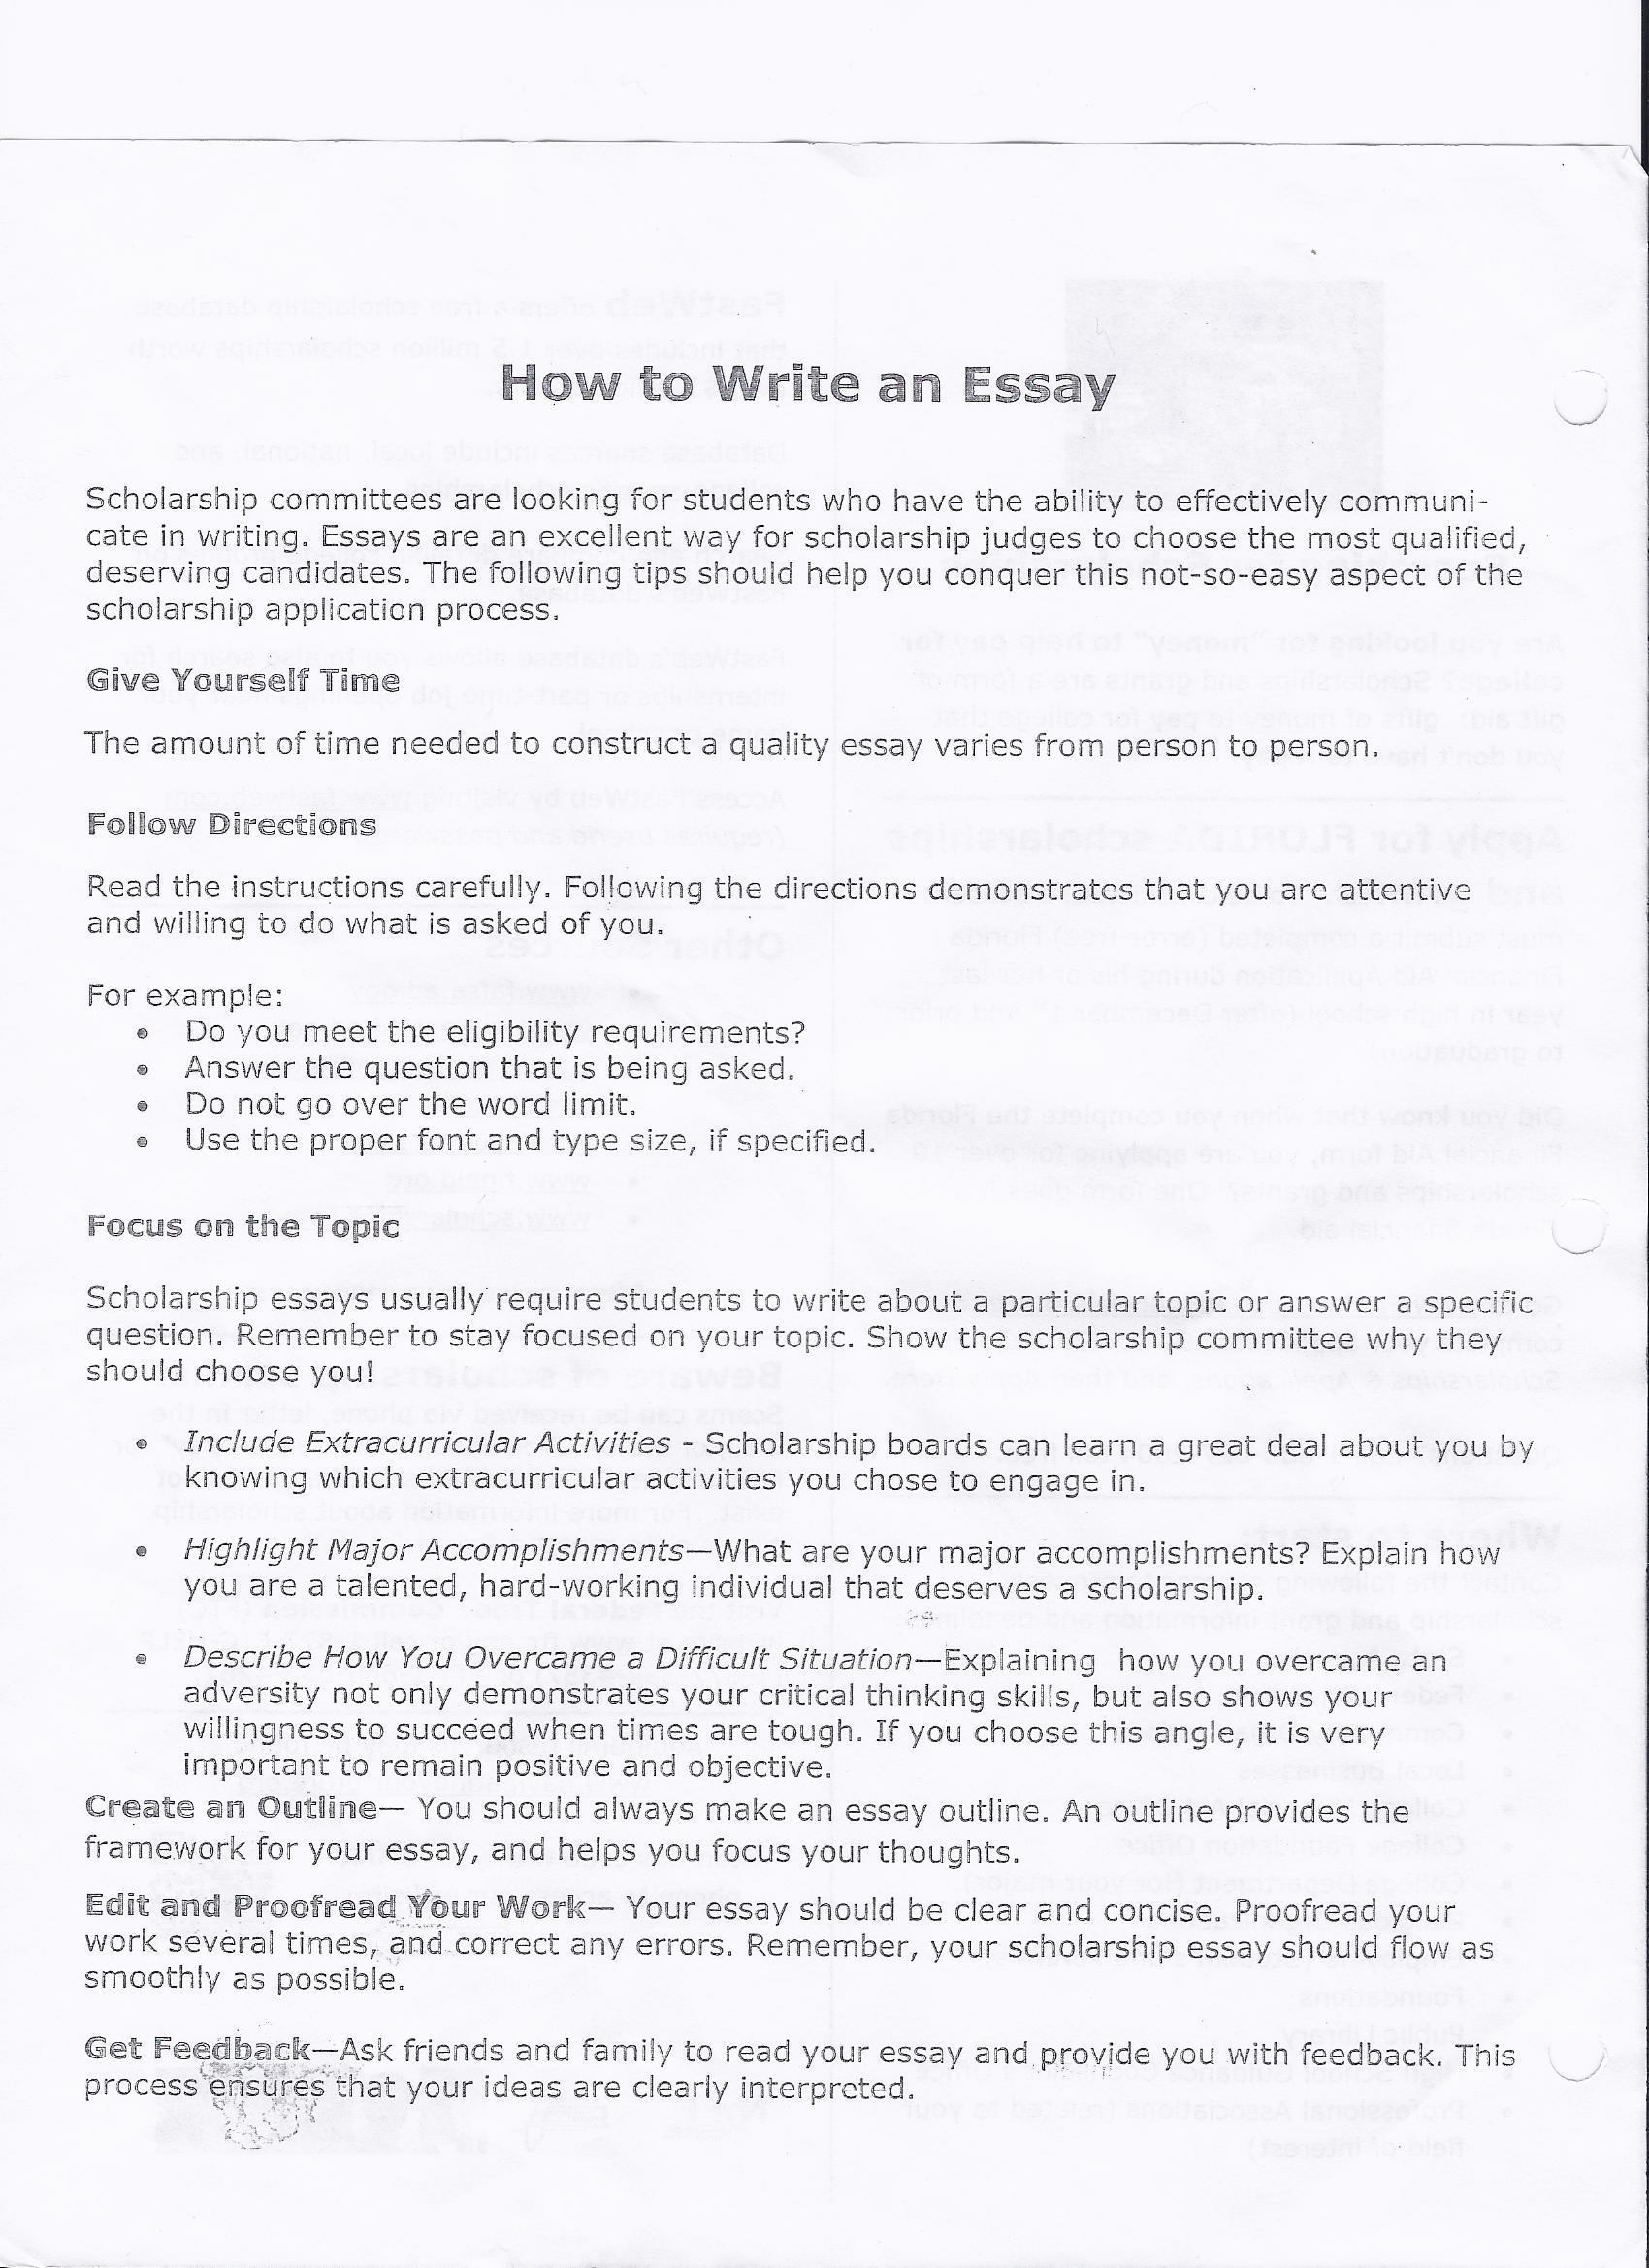 adversity essay As juniors begin to turn their thoughts to the college application process looming in front of them, now is the time to start to generate ideas for a stand-out essay.